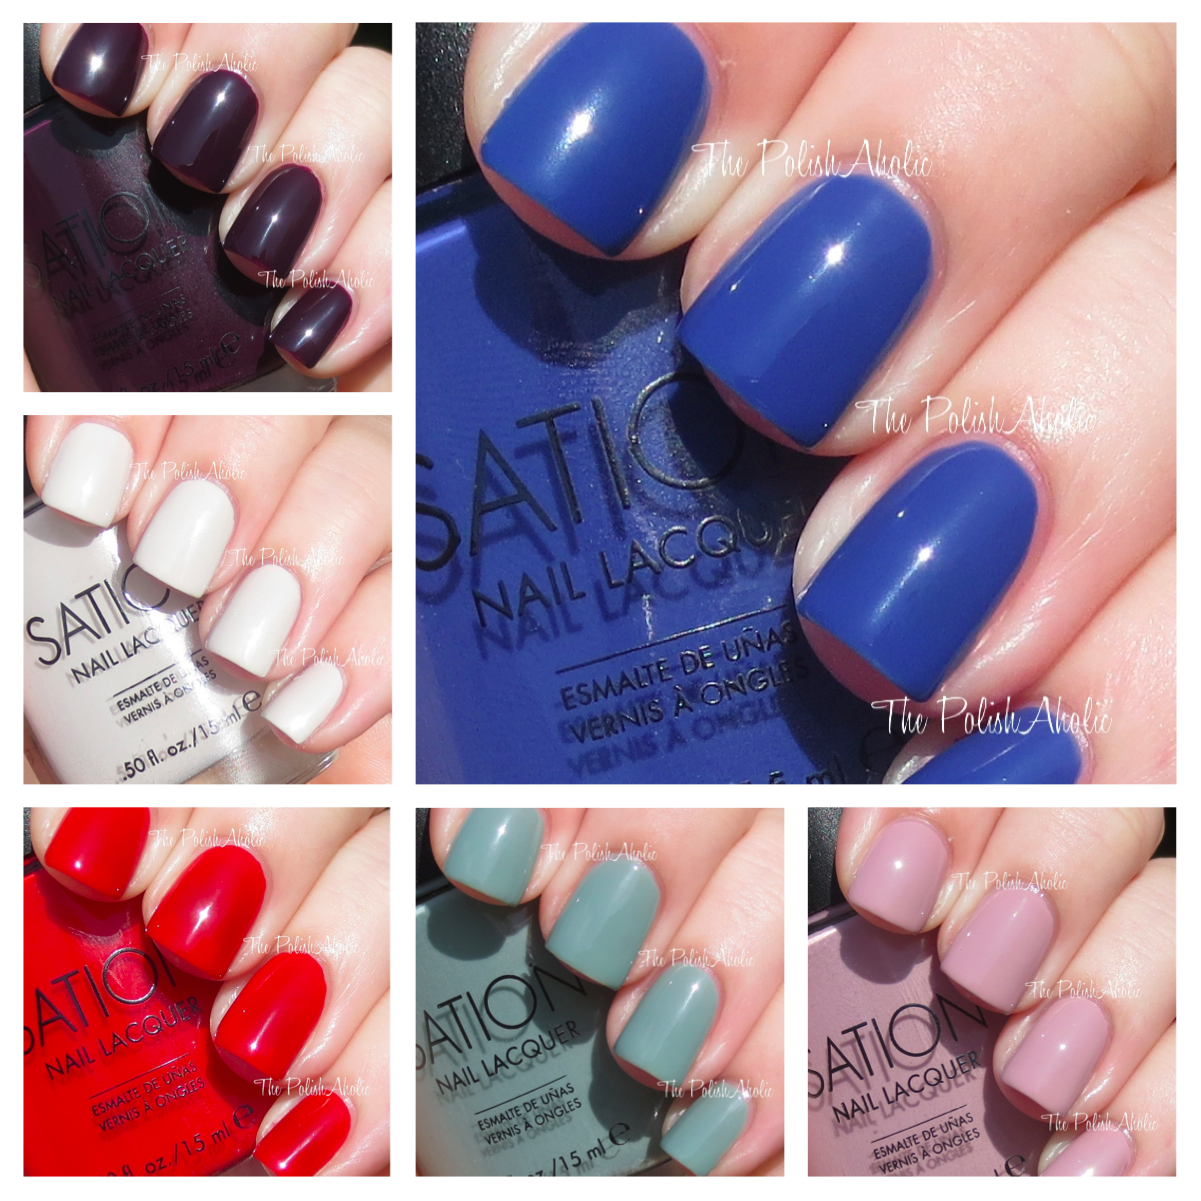 The PolishAholic: Sation Fall 2013 Miss-terranean Collection Swatches